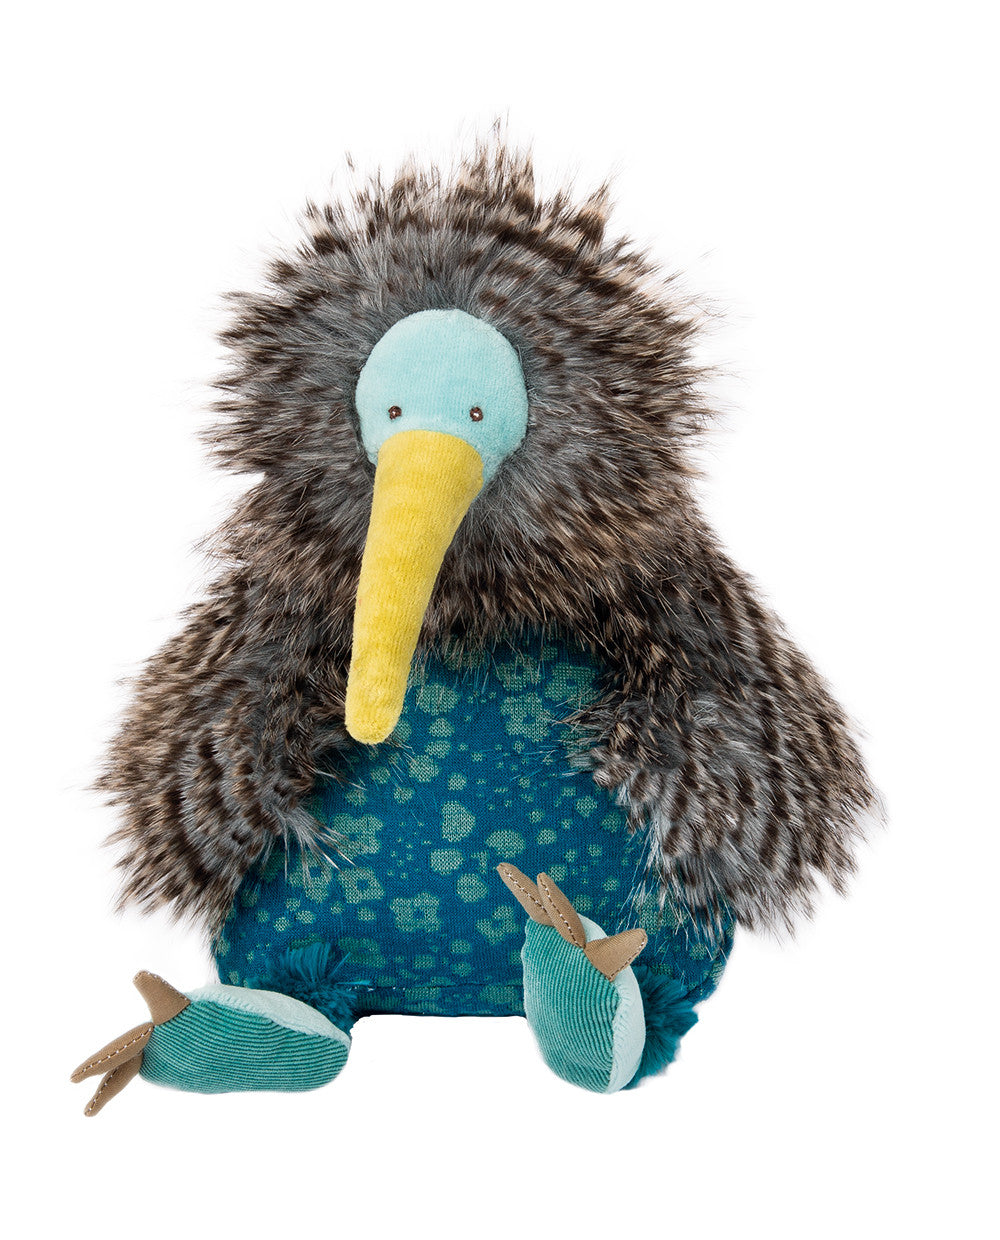 Plush soft toys - Moulin Roty Bazar Collection - Kiwi Bird - How I Wonder.co.uk